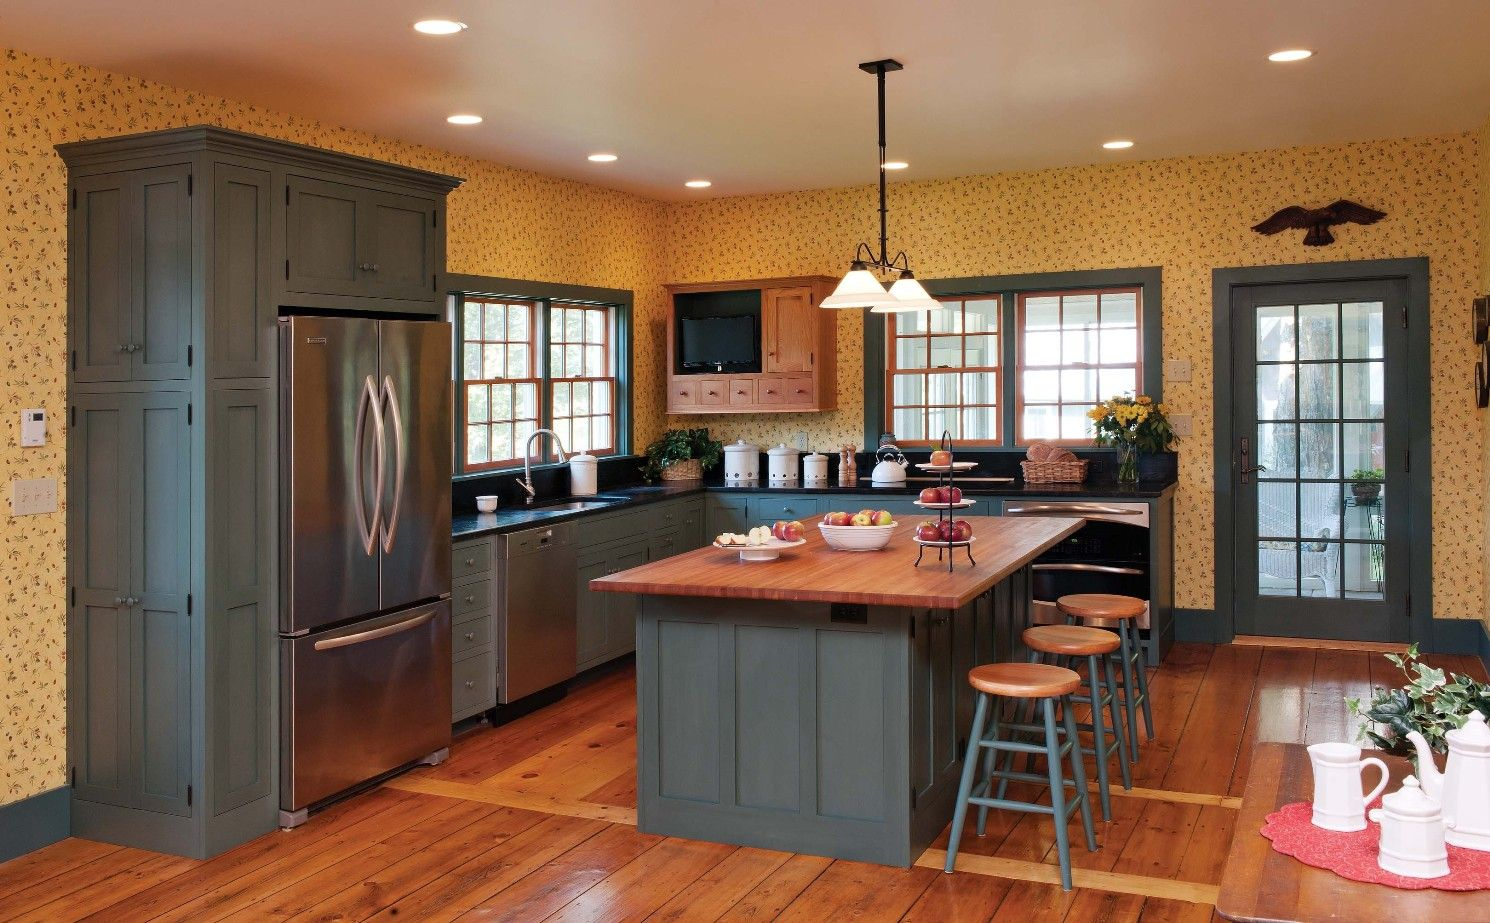 Painted kitchen cabinets u make an instant makeover to your kitchen